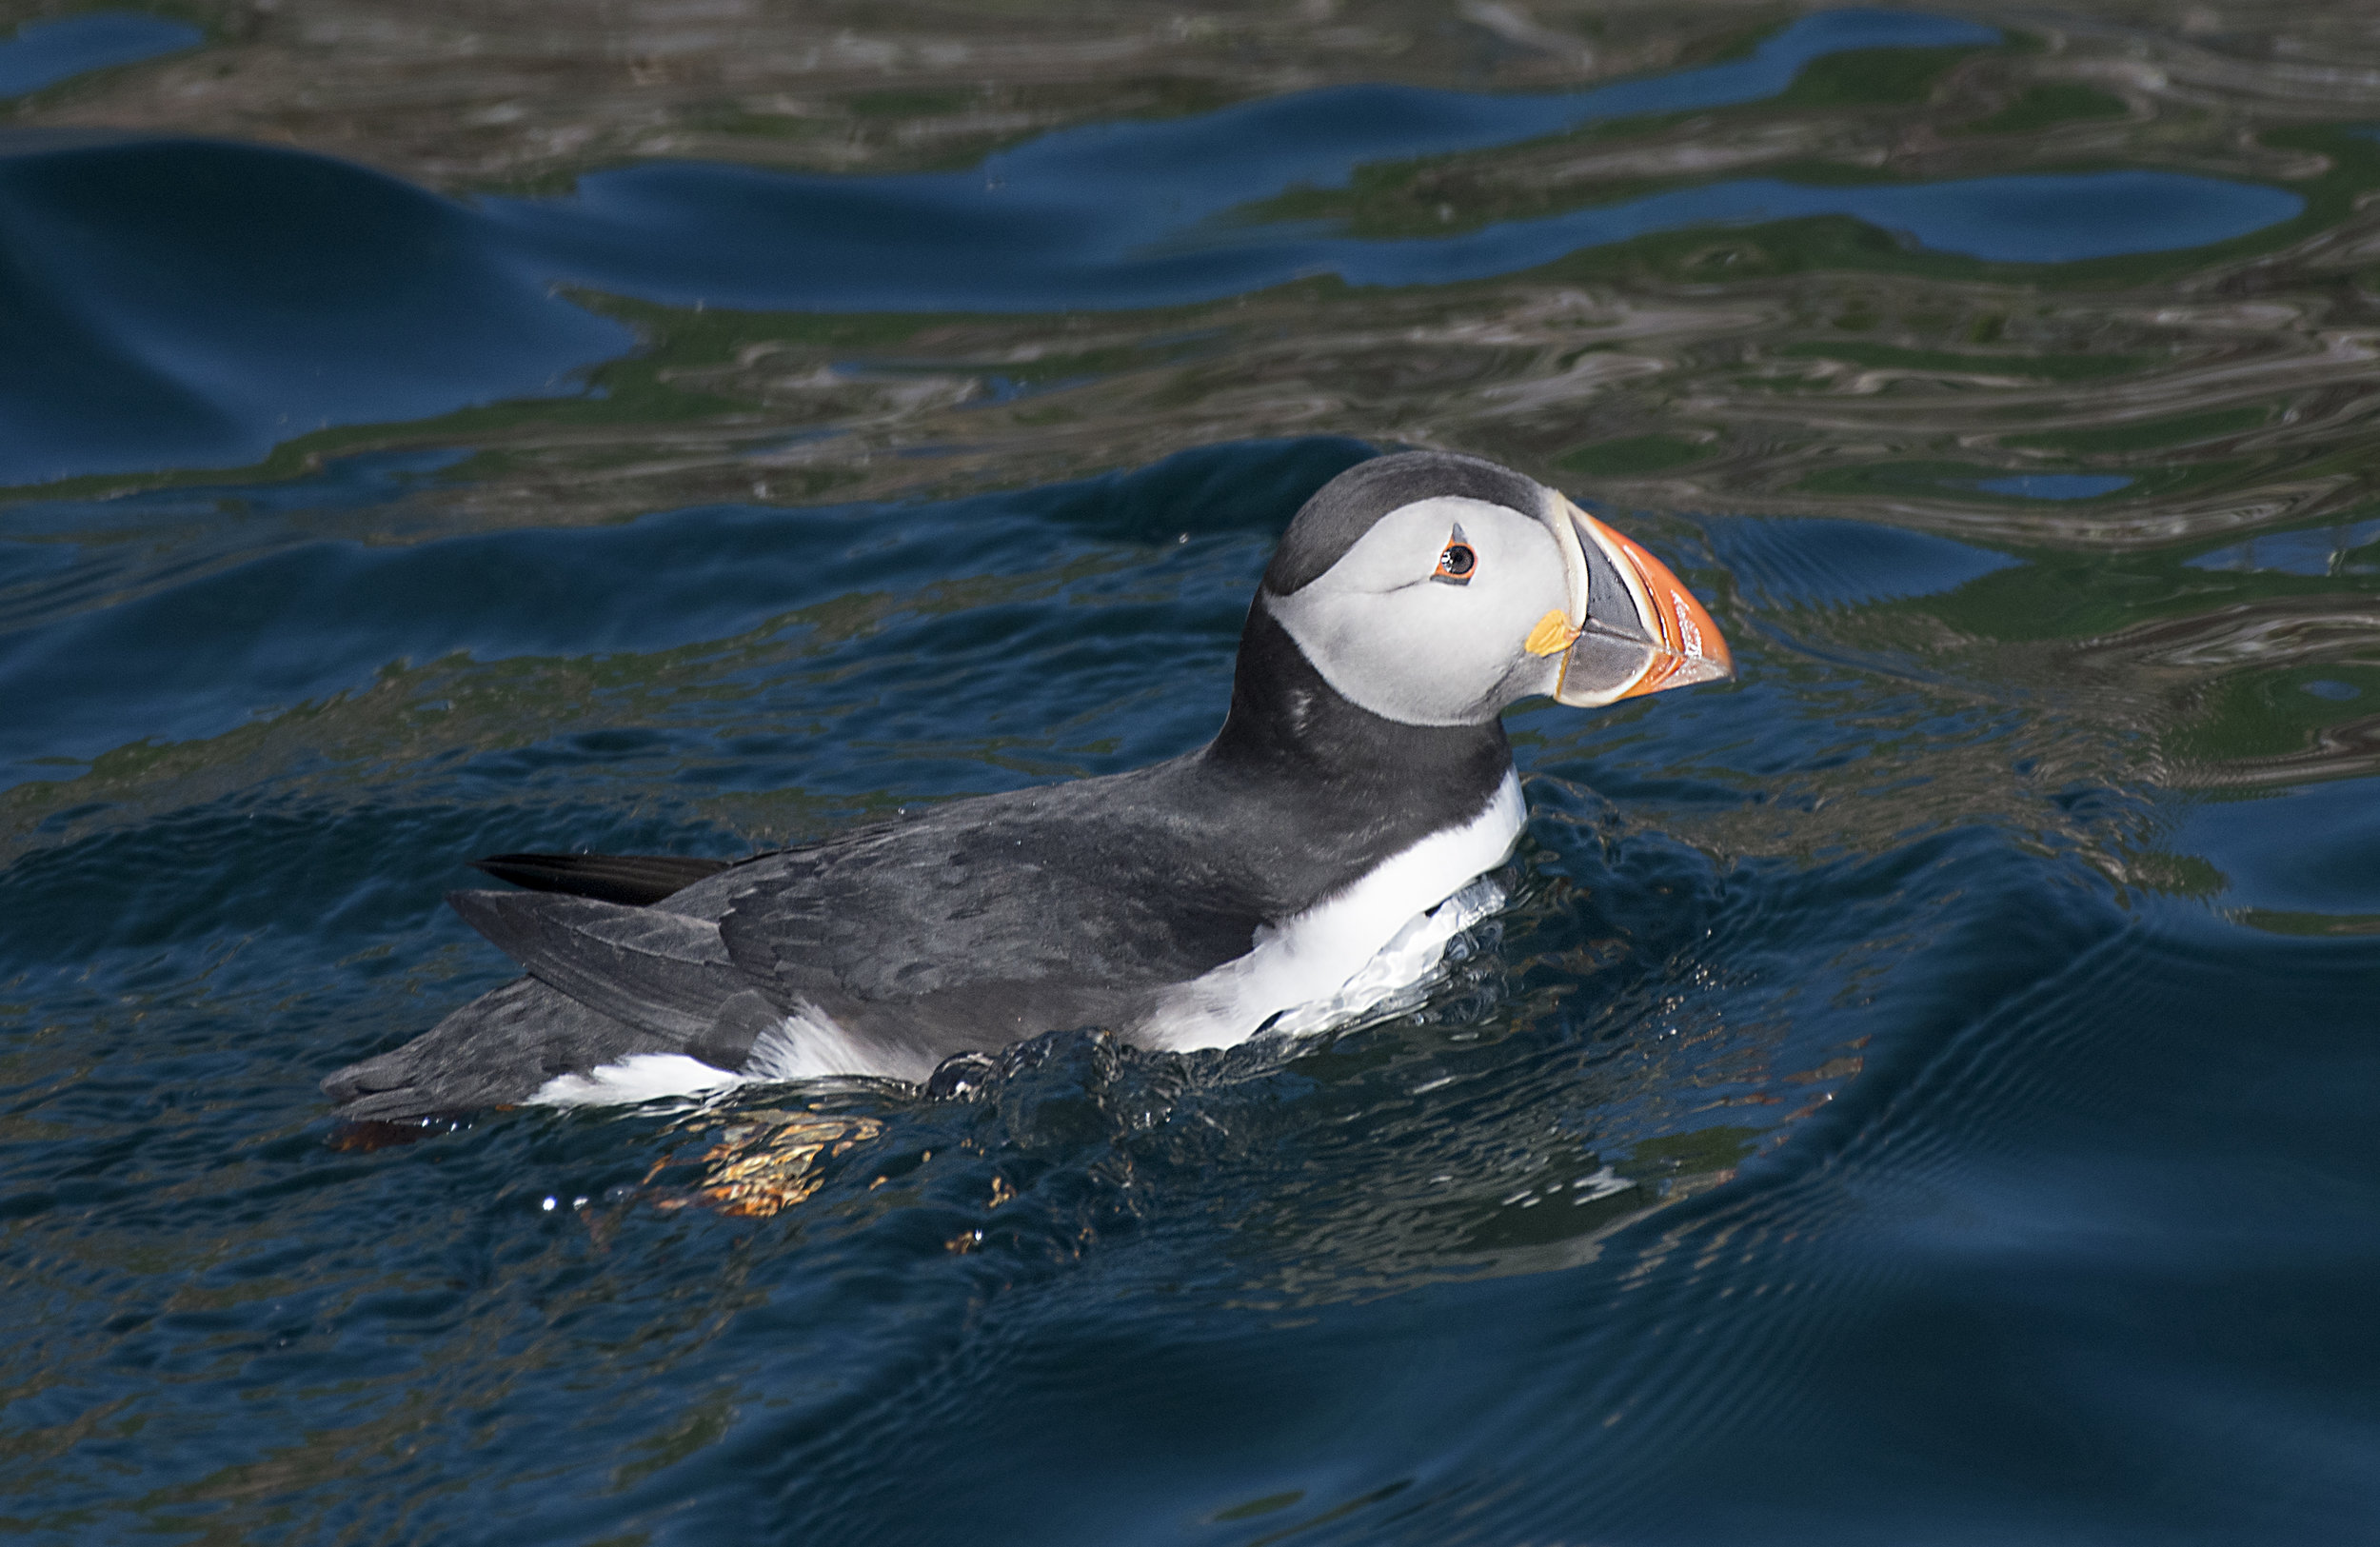 Puffin in the water by Chris Pepper